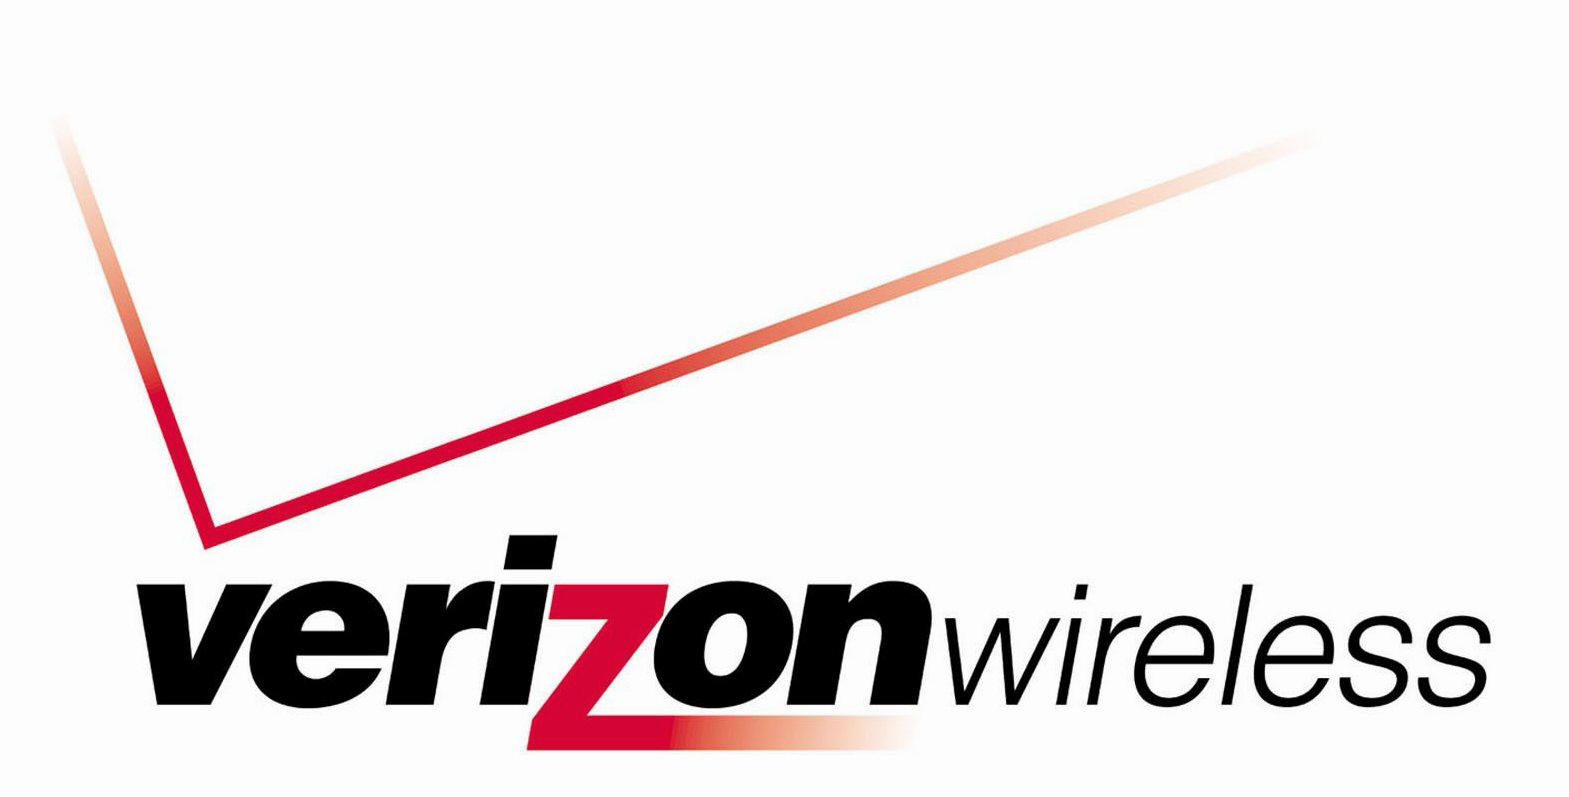 Surprise surprise — Verizon won't be using tax cut to boost spending on network upgrades Verizon's spending won't change much, and tax savings will boost balance sheet.